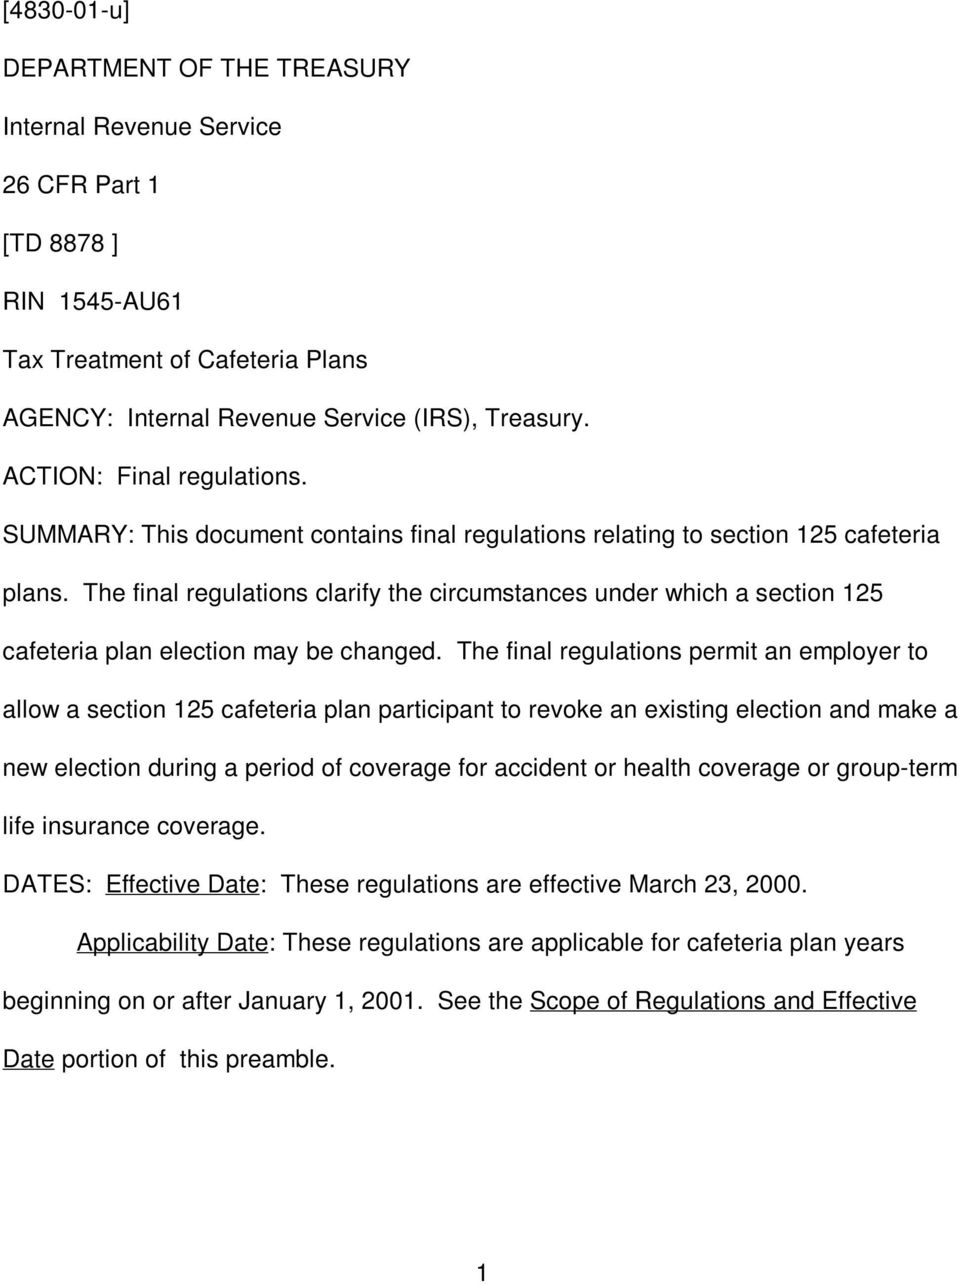 The final regulations clarify the circumstances under which a section 125 cafeteria plan election may be changed.